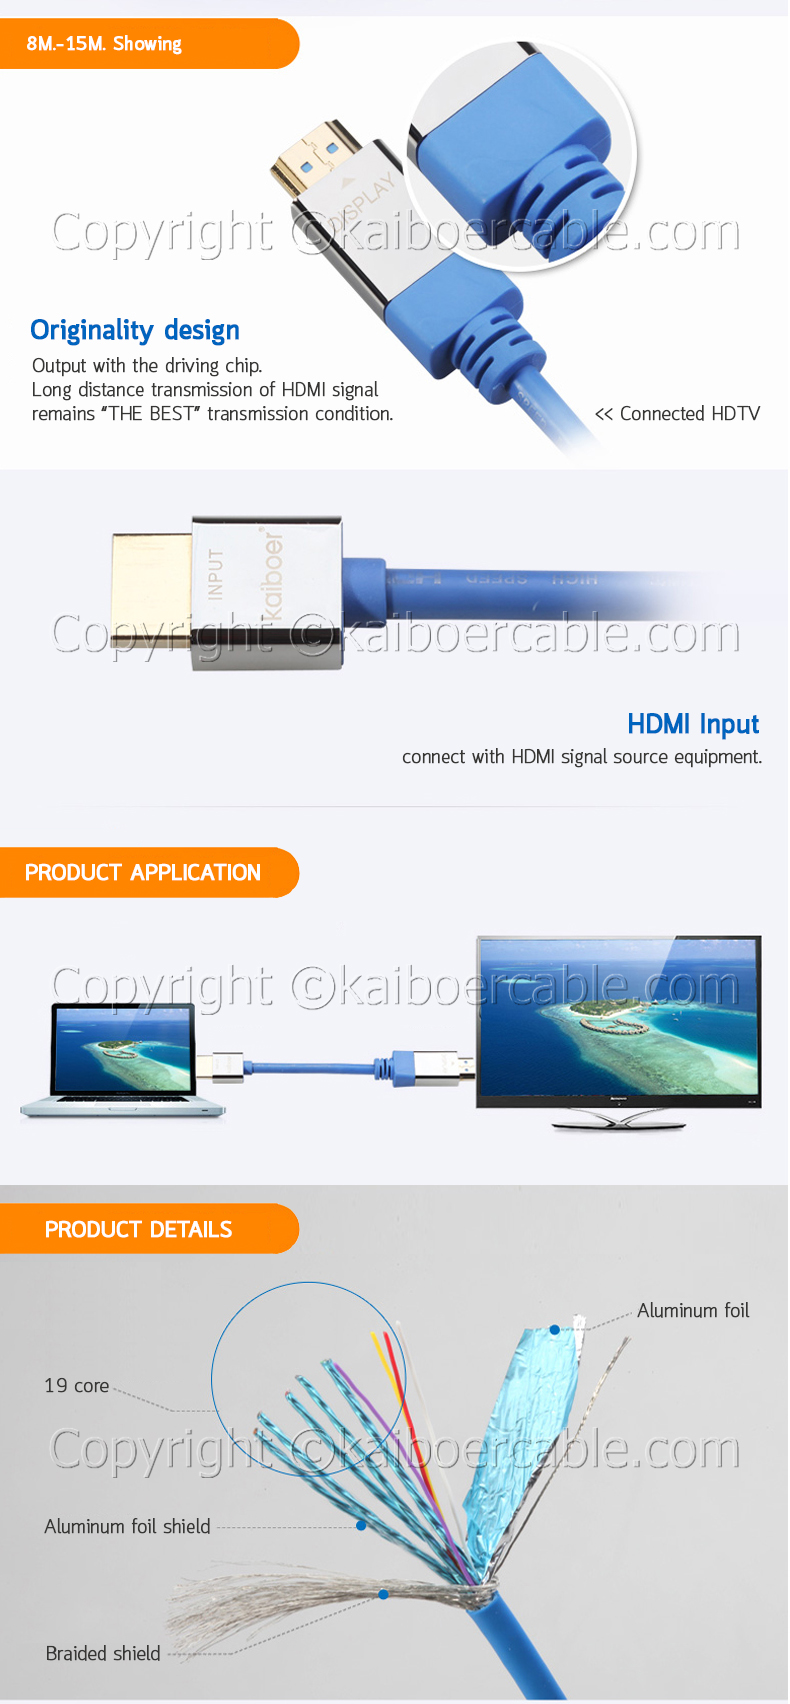 Kaiboer_KBE_HD_Series_Fashion_HDMI_Cable_3